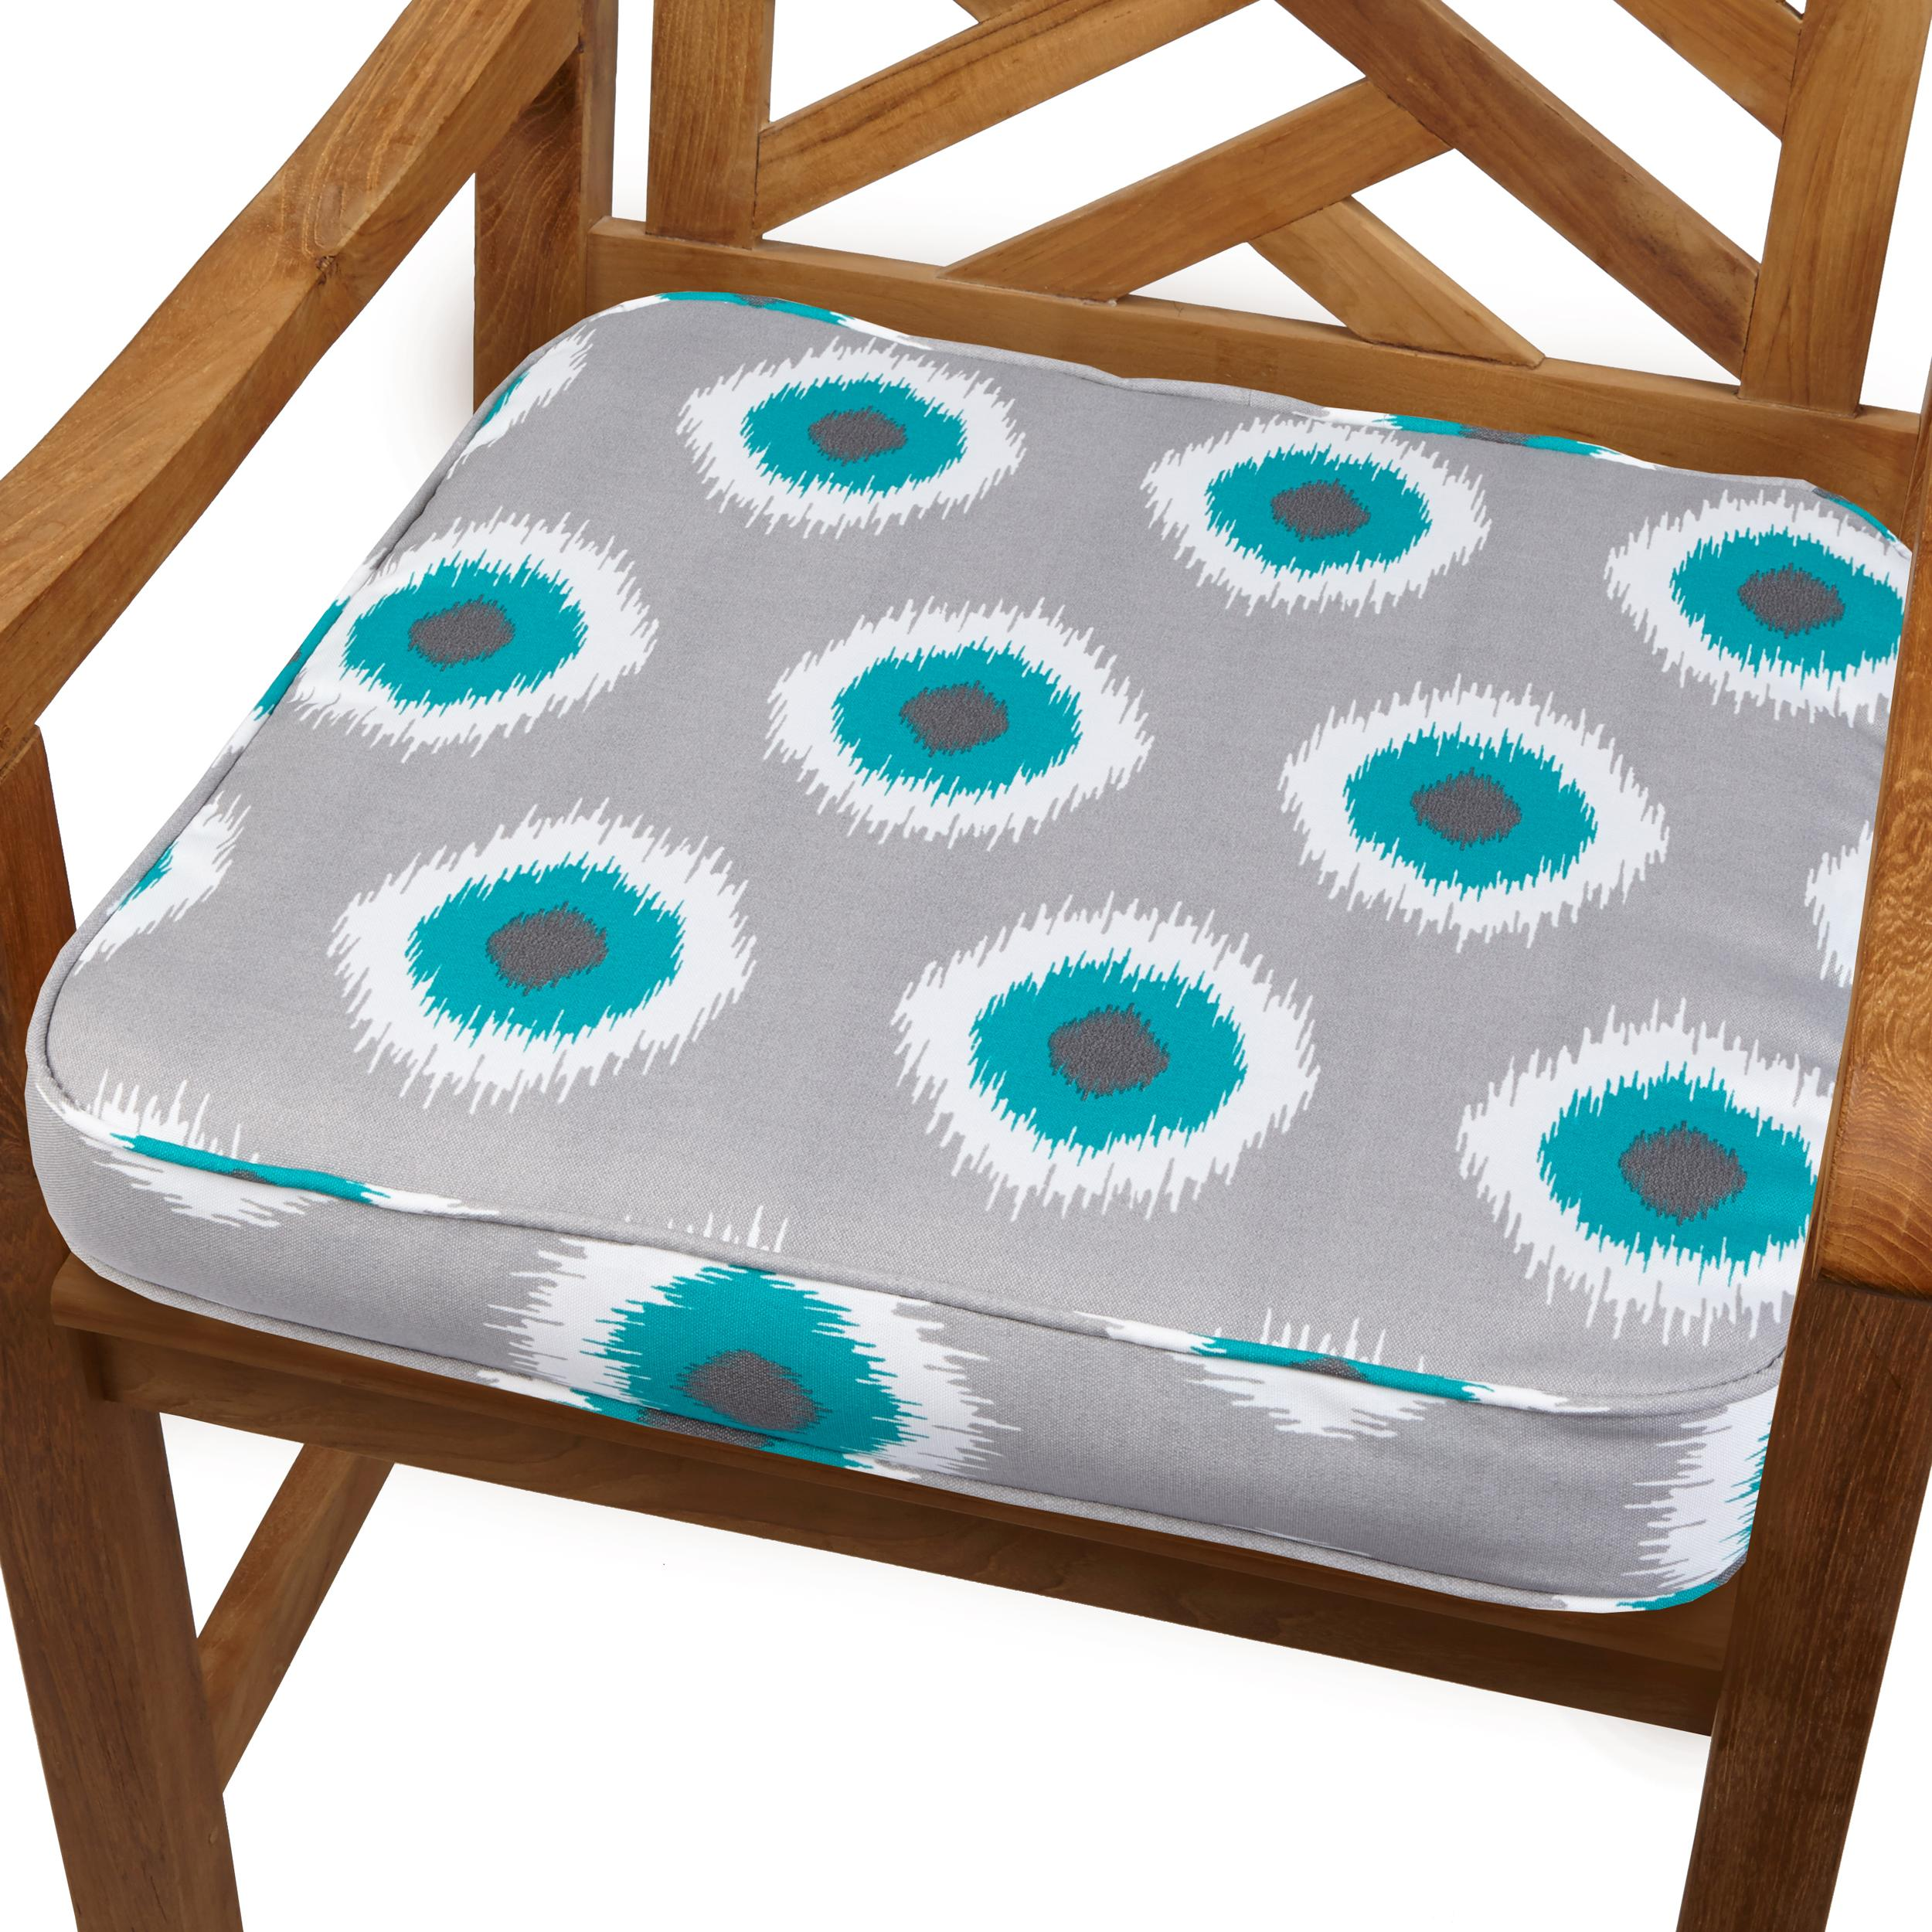 teal chair cushions cb2 leather view larger